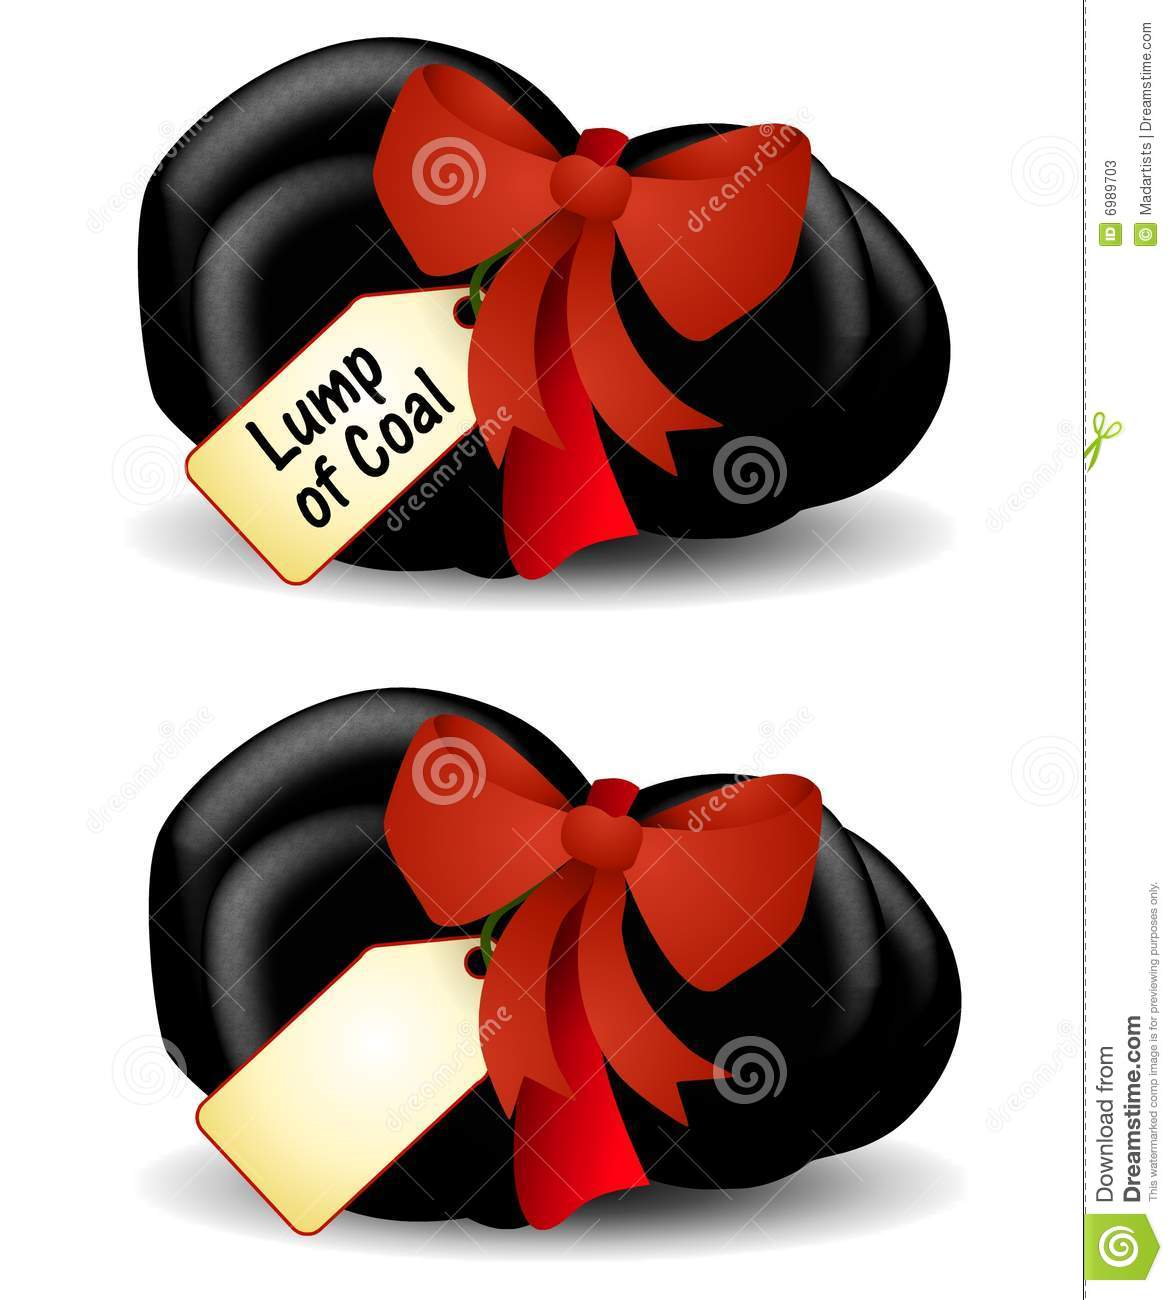 Clip Art Illustration Featuring A Lump Of Coal Wrapped In A Bow With